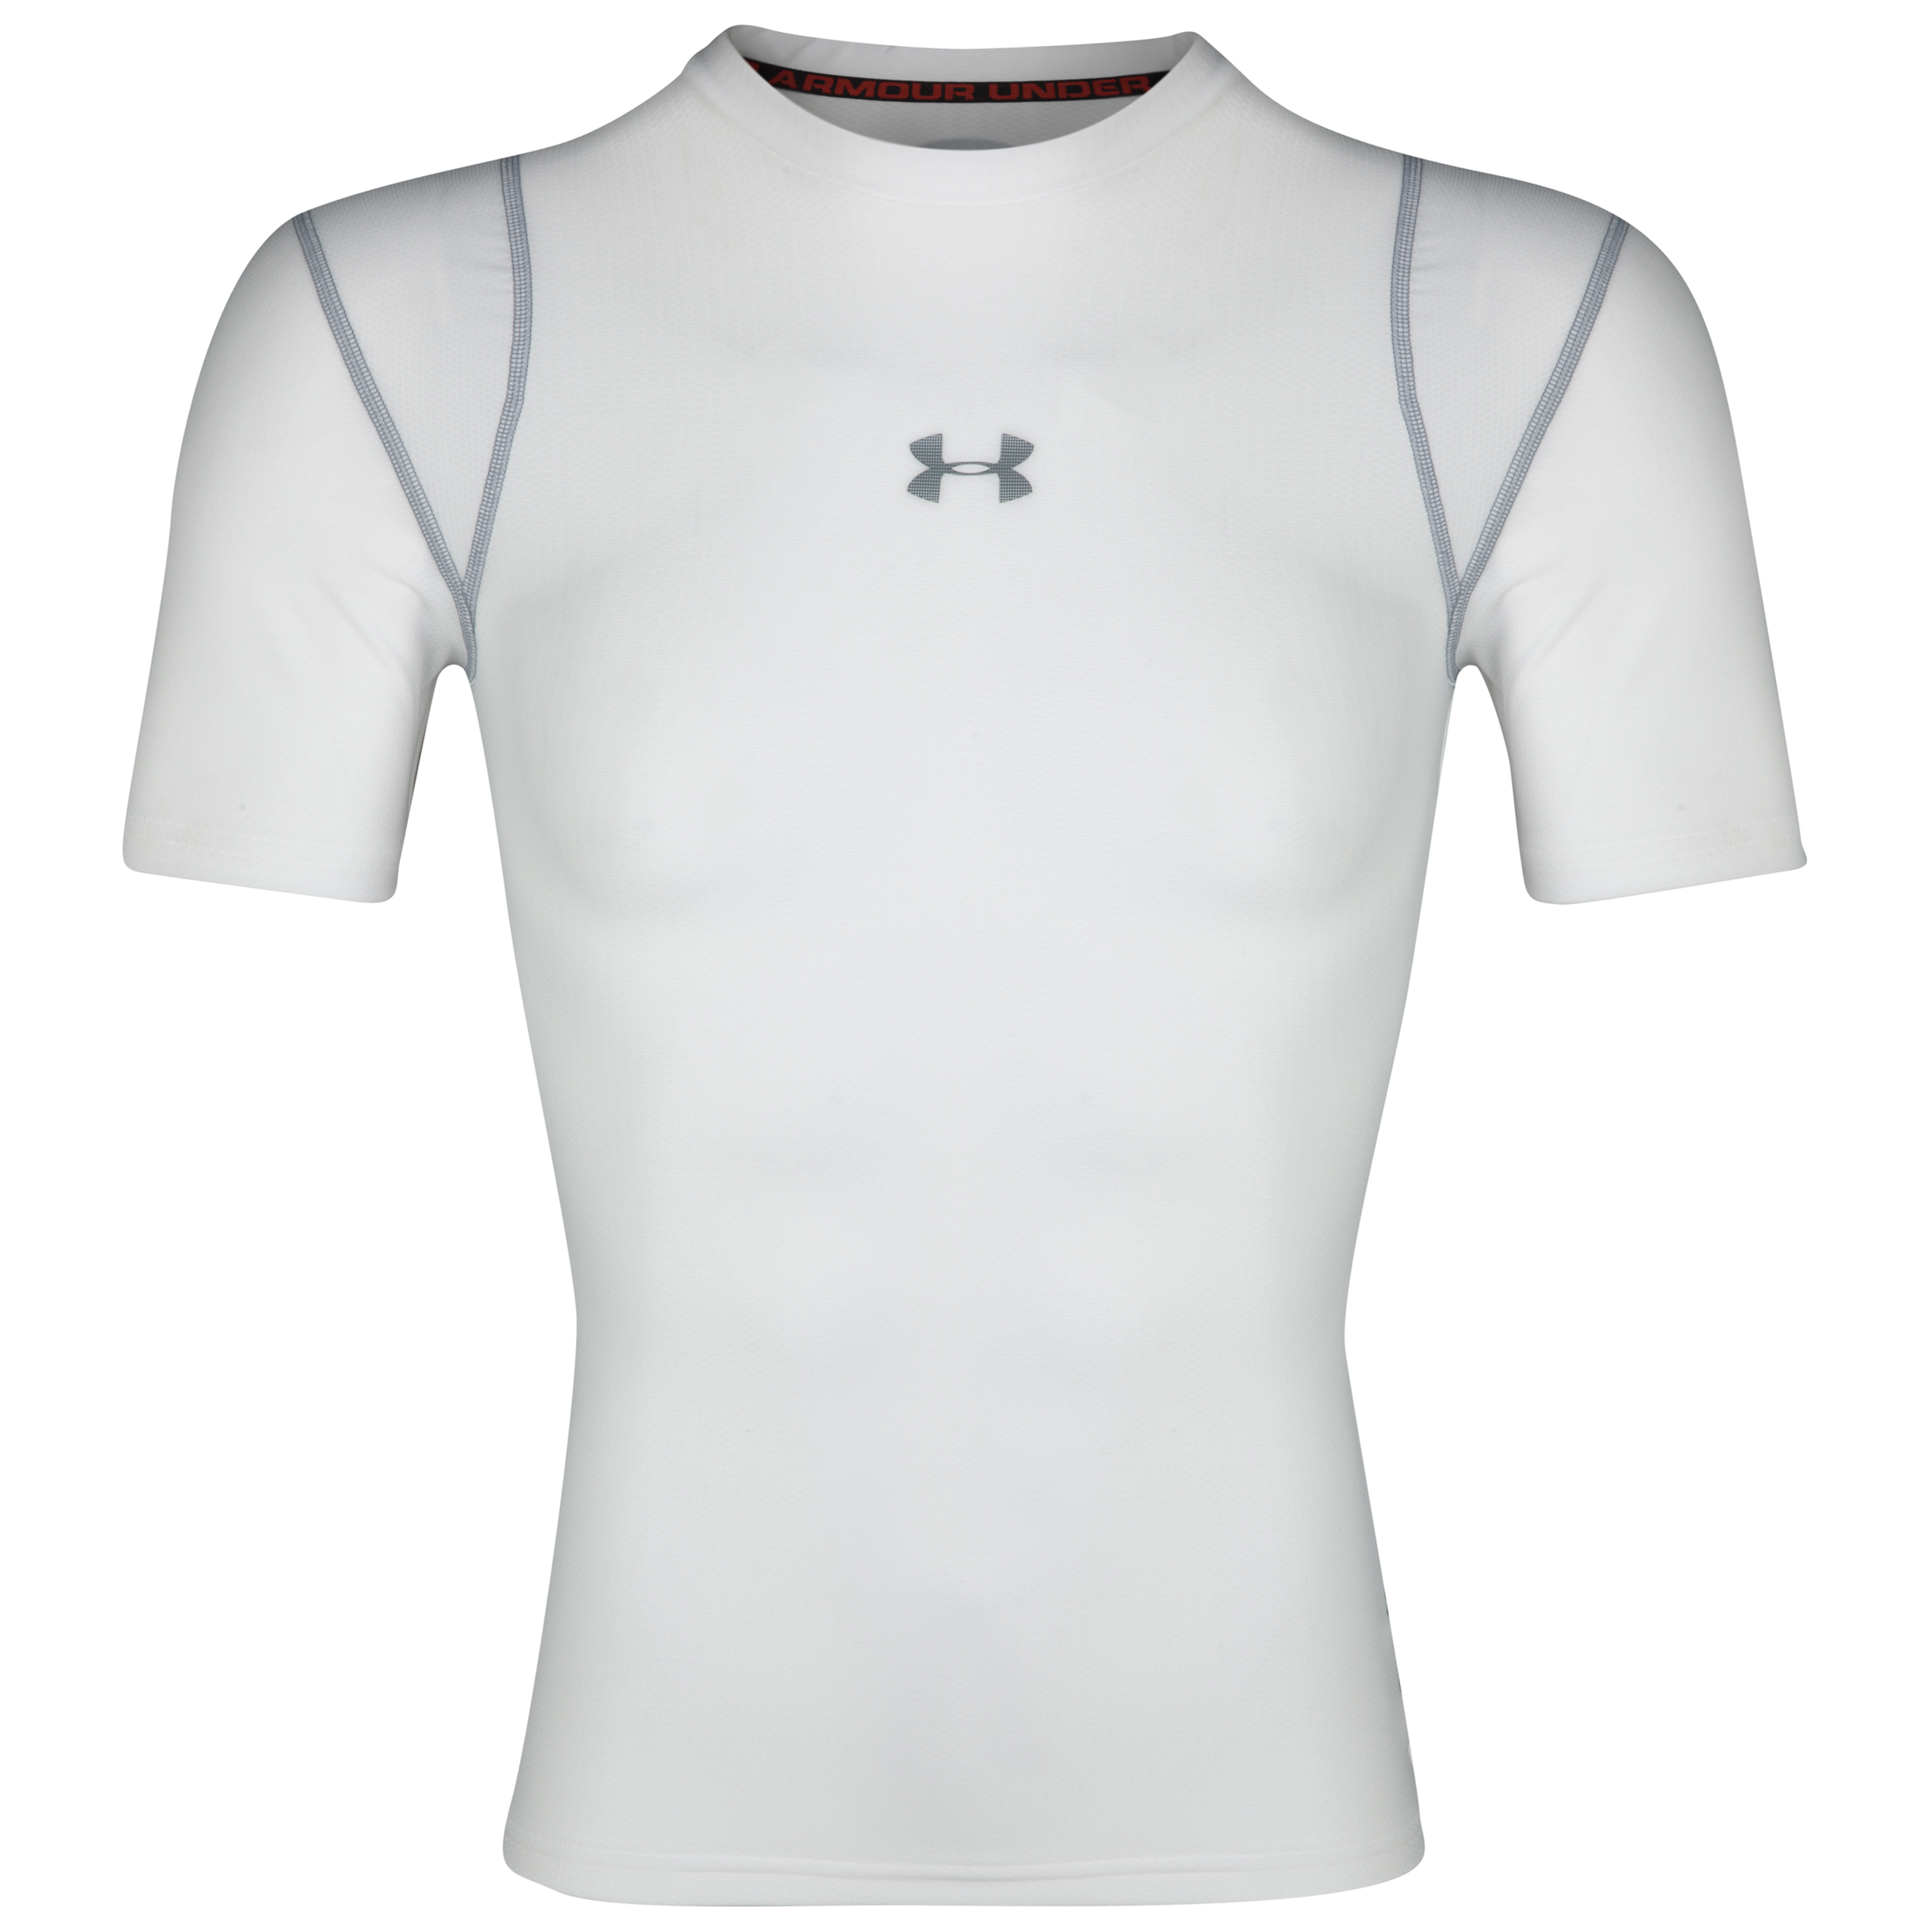 Under Armour Charged Cotton T-Shirt - White/Aluminium